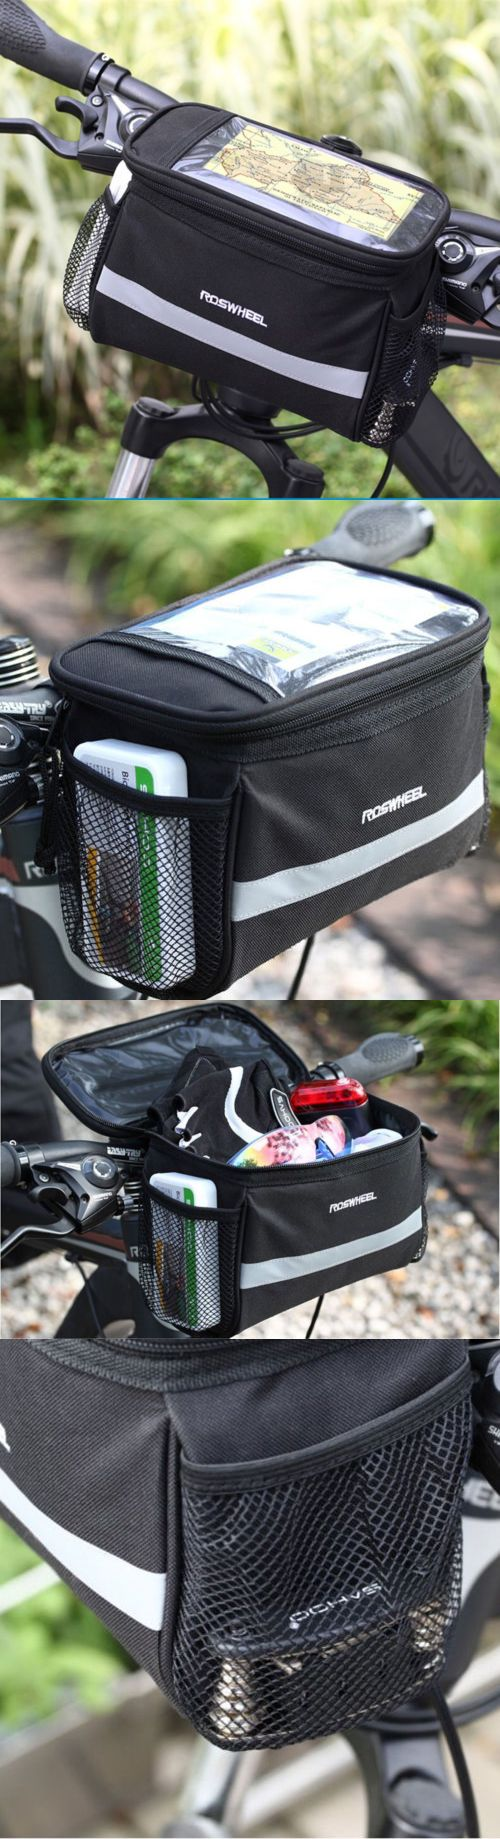 24 Best Bags And Panniers 177833 Images On Pinterest Rockbros A 008 Bike Handlebar Front Waterproof Pannier Bag 3 4l Cycling Bicycle Basket Top Frame Pouch